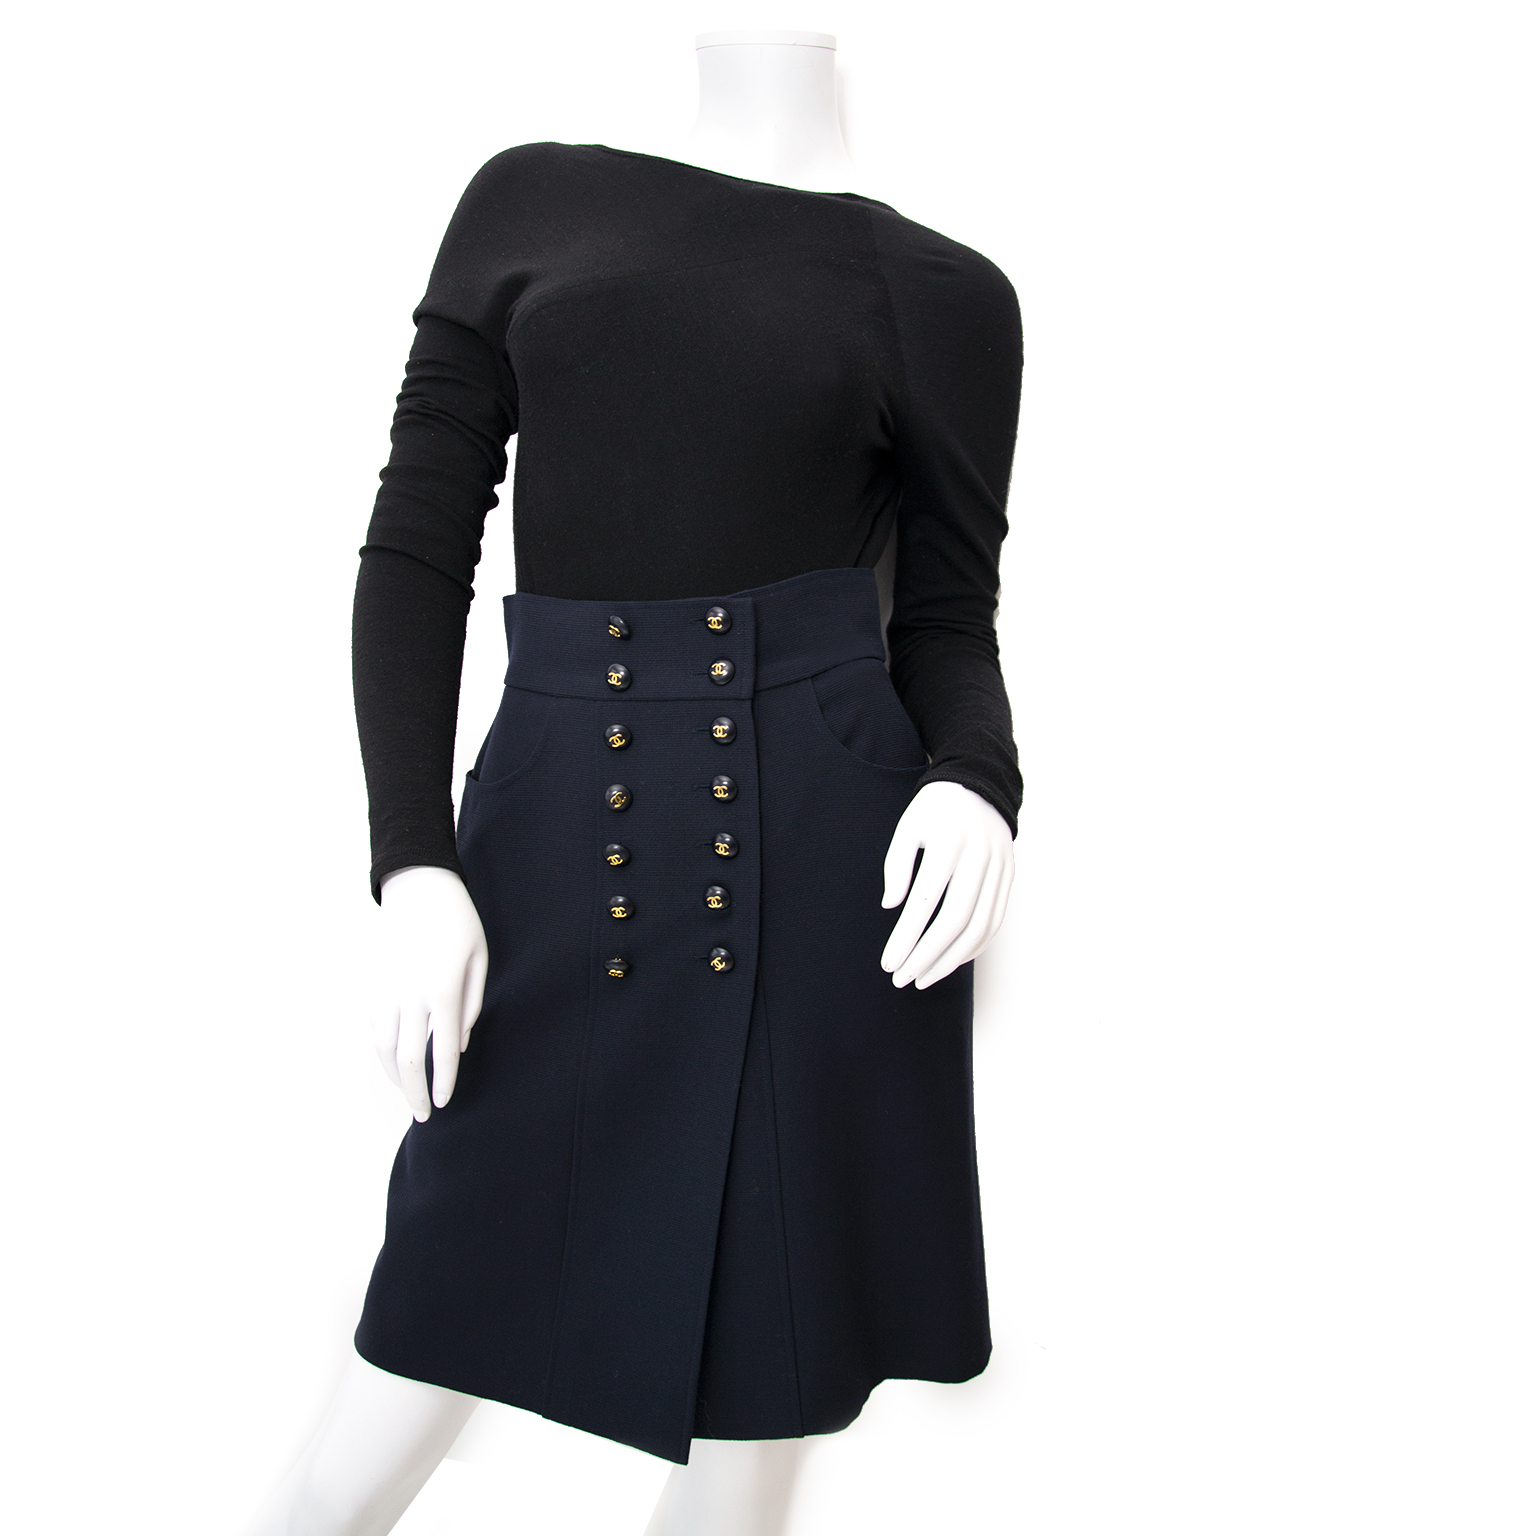 Chanel Navy Blue Skirt double row gold cc buttons now online at labellov.com for the best price